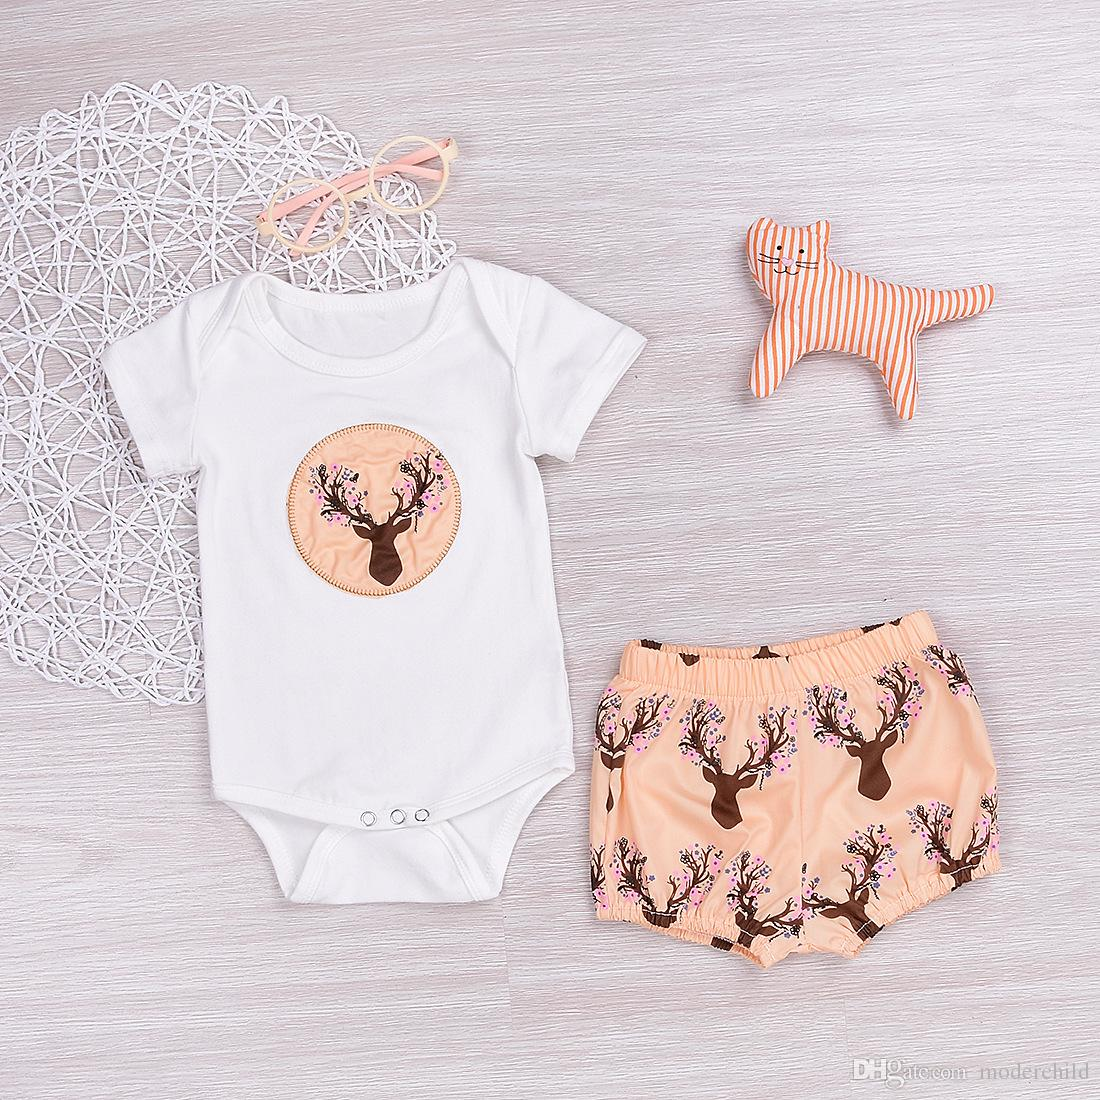 Baby baby summer clothes sets baby girl deer tête bretelle à manches courtes ave